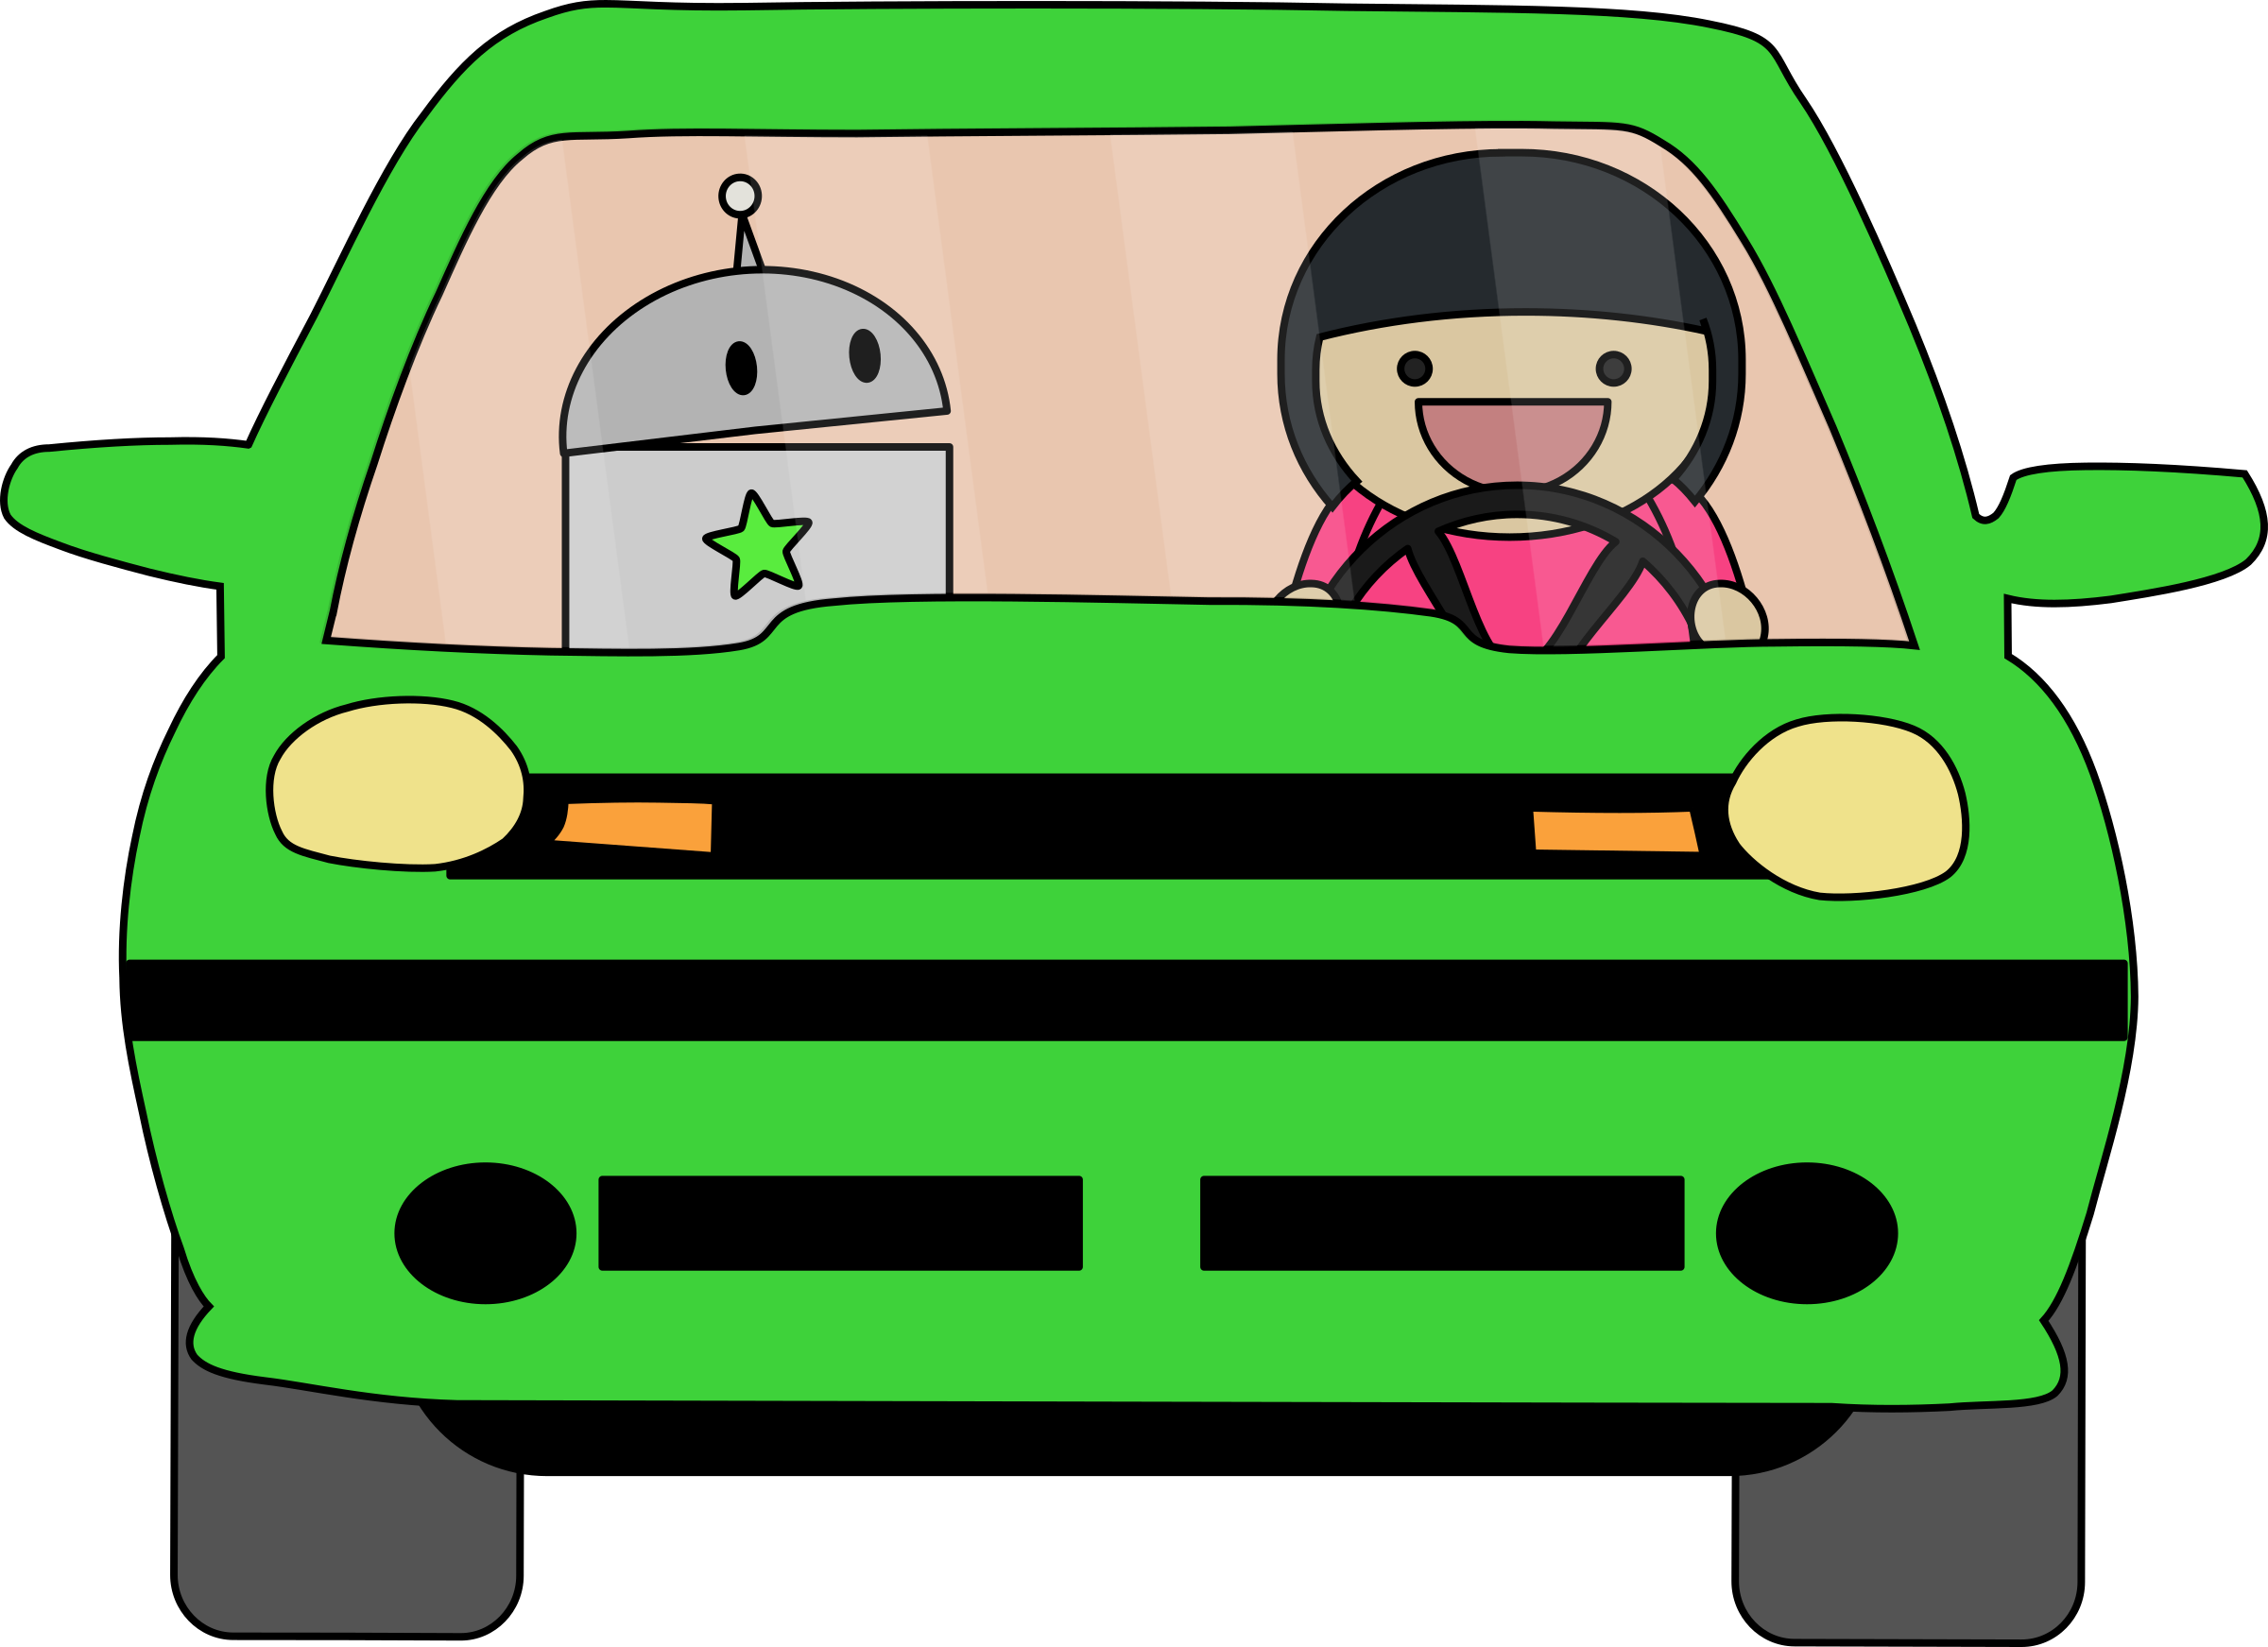 Car trip clipart image royalty free stock Clipart - Driving image royalty free stock